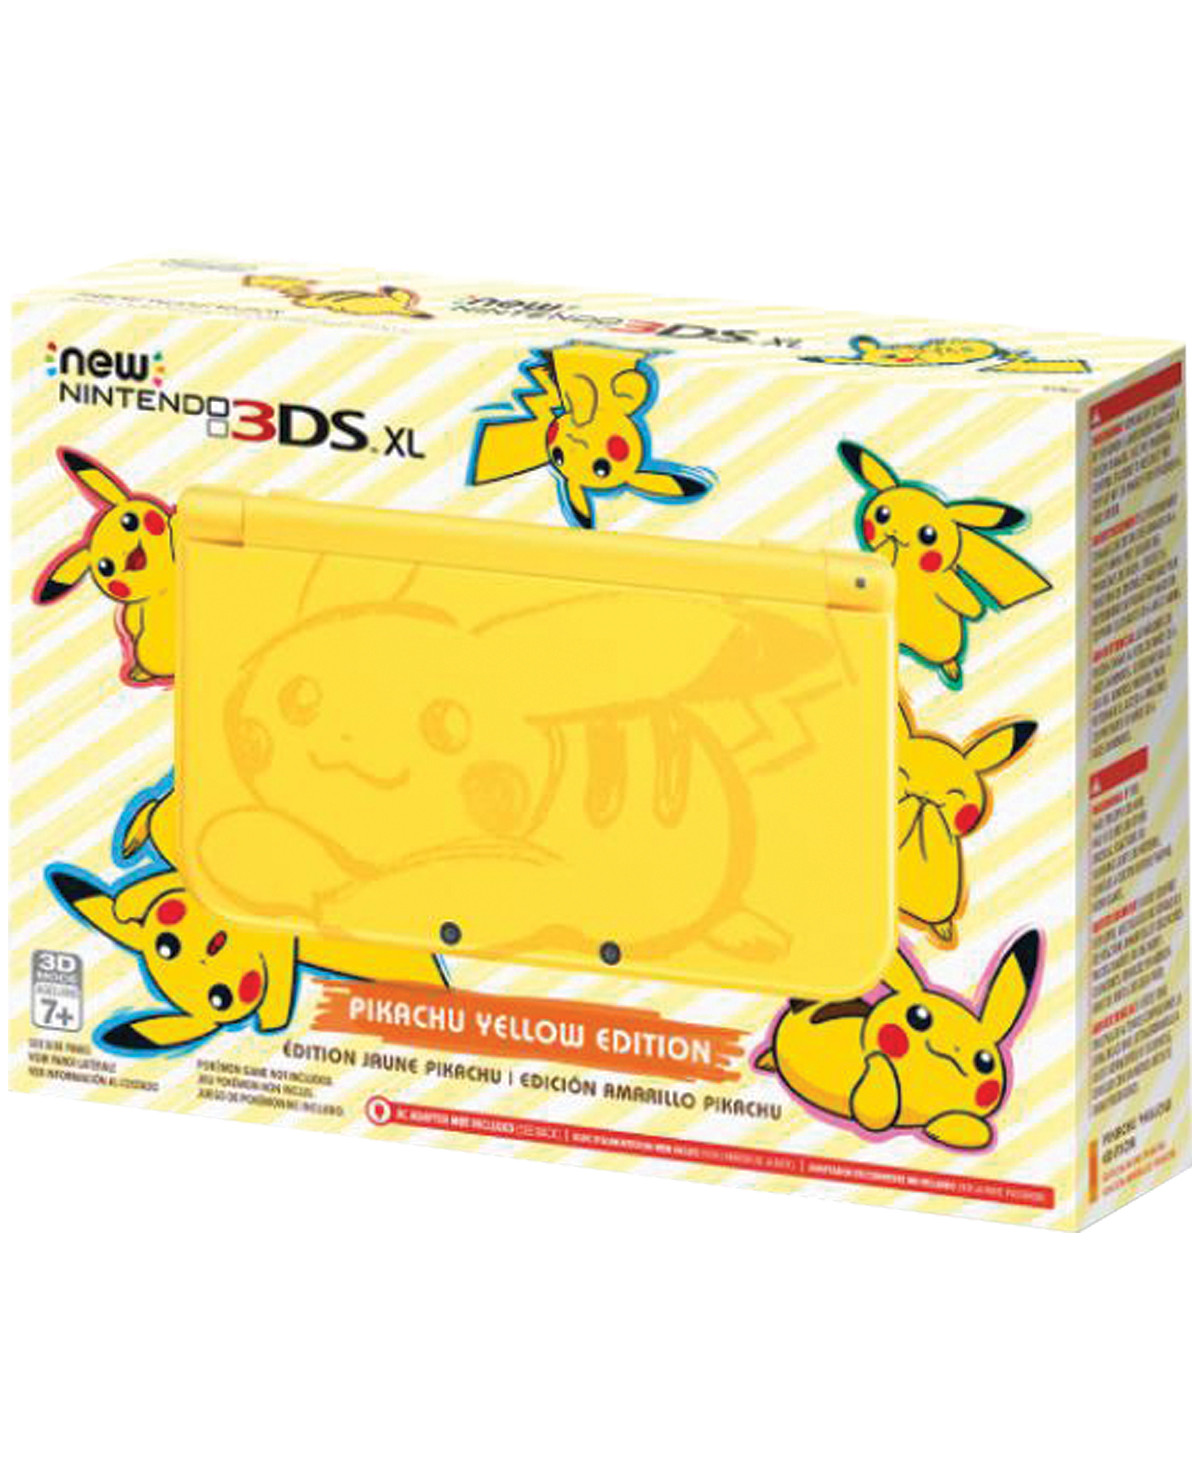 CONSOLA NEW NINTENDO 3DS XL AMARILLA POKEMON PIKACHU